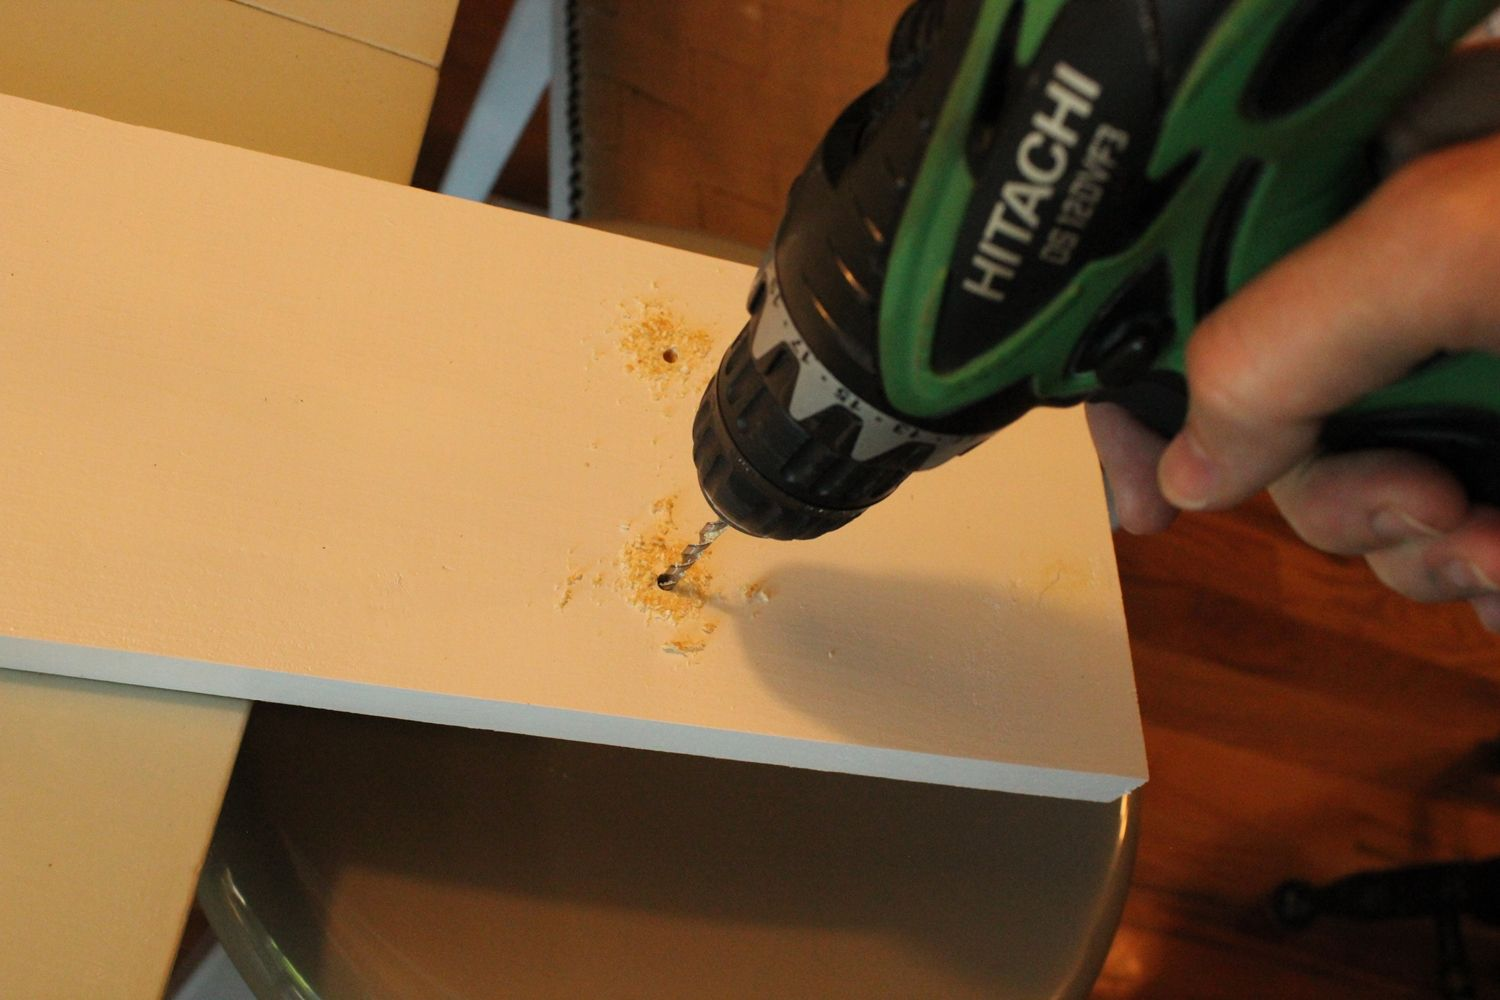 DIY Copper Cup Holder Drill Holes